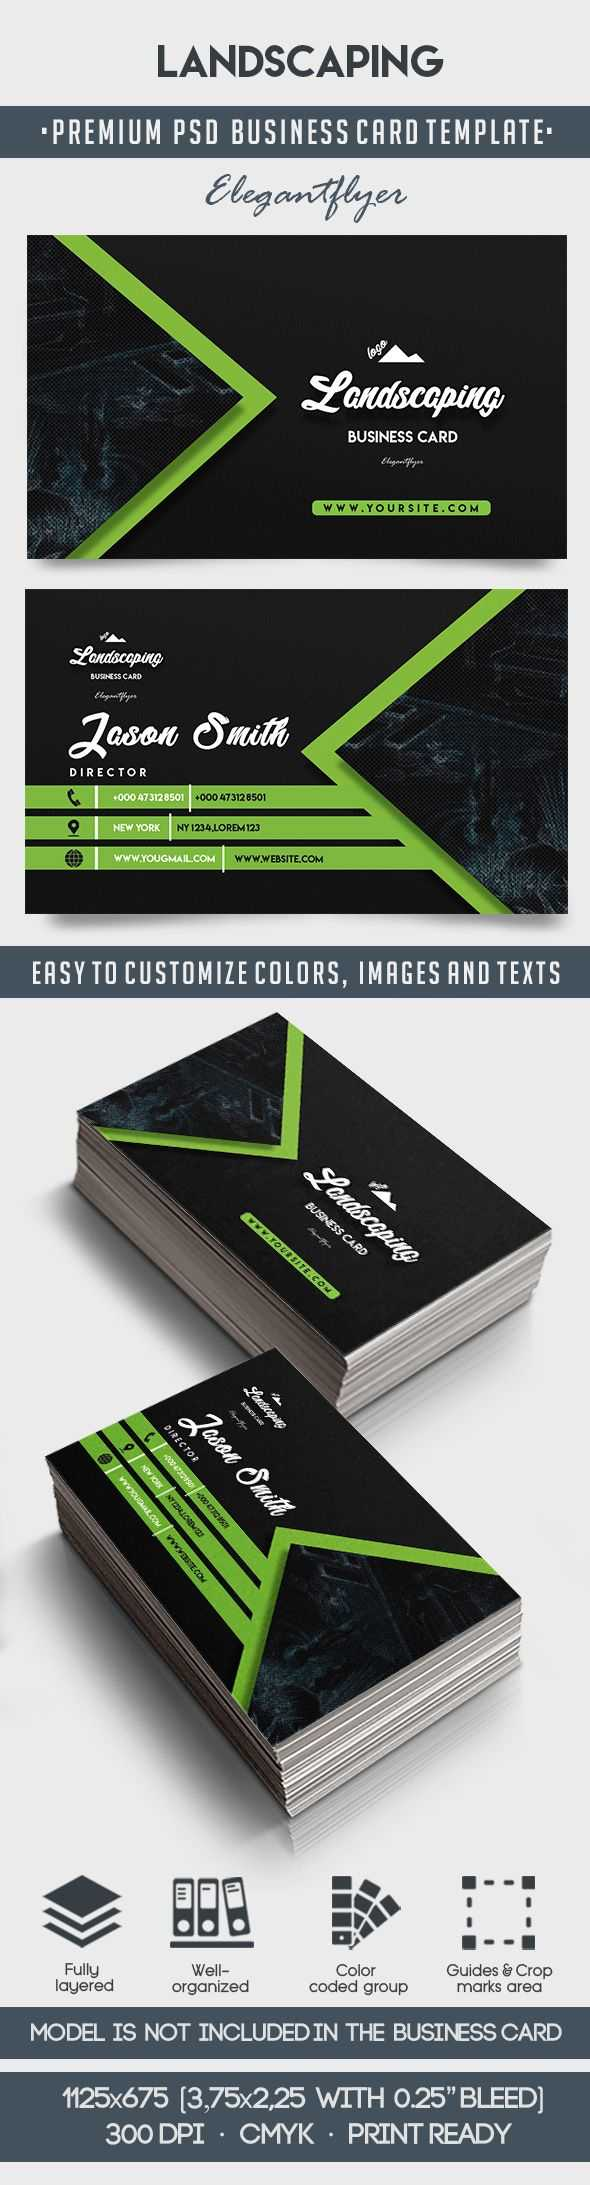 Landscaping – Business Card Templates Psd intended for Landscaping Business Card Template